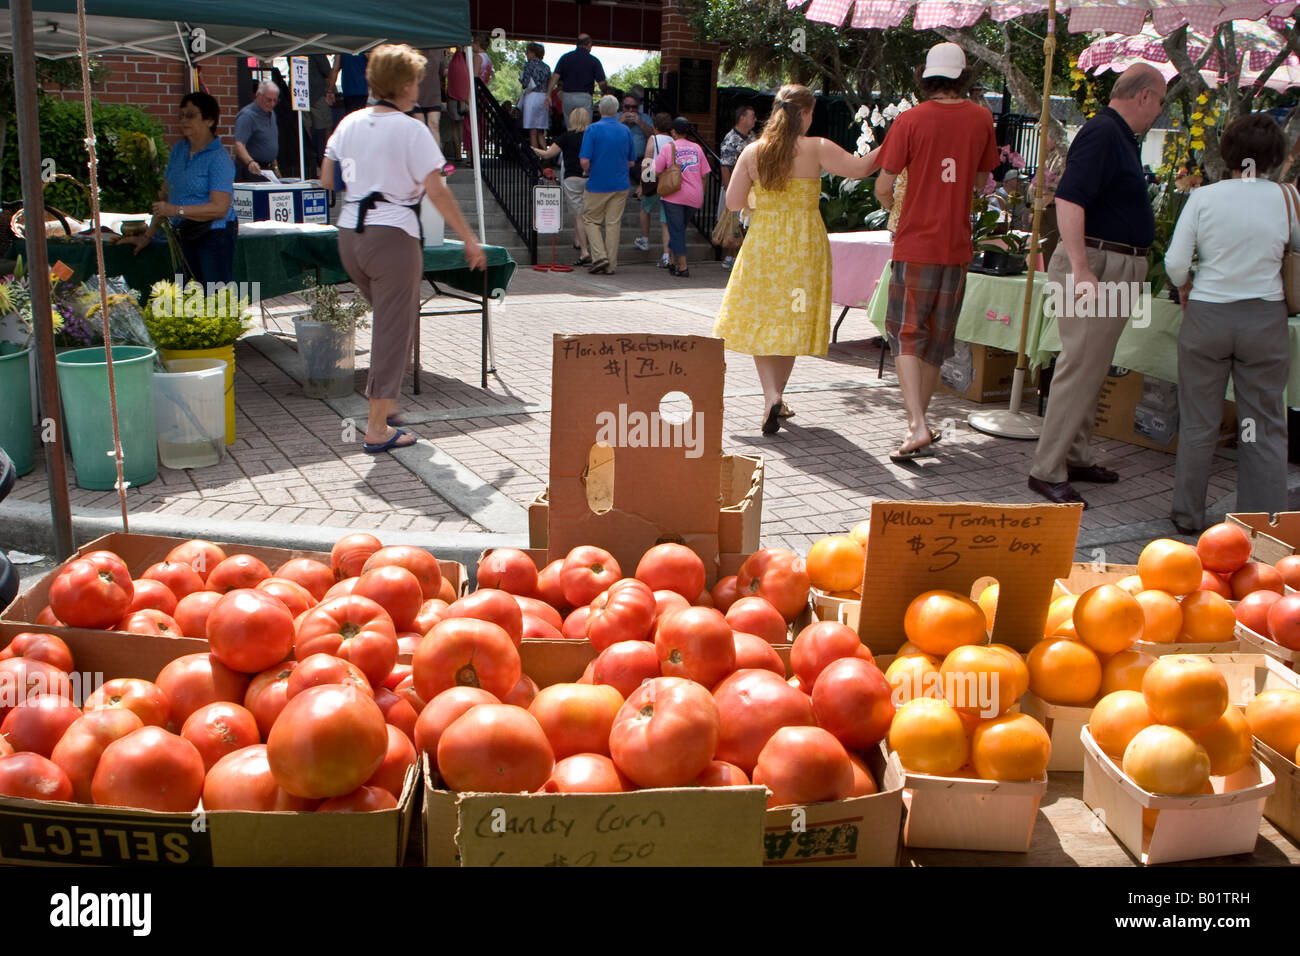 Tomatoes For Sale At The Winter Park Farmer S Market Winter Park Fl Stock Photo Royalty Free